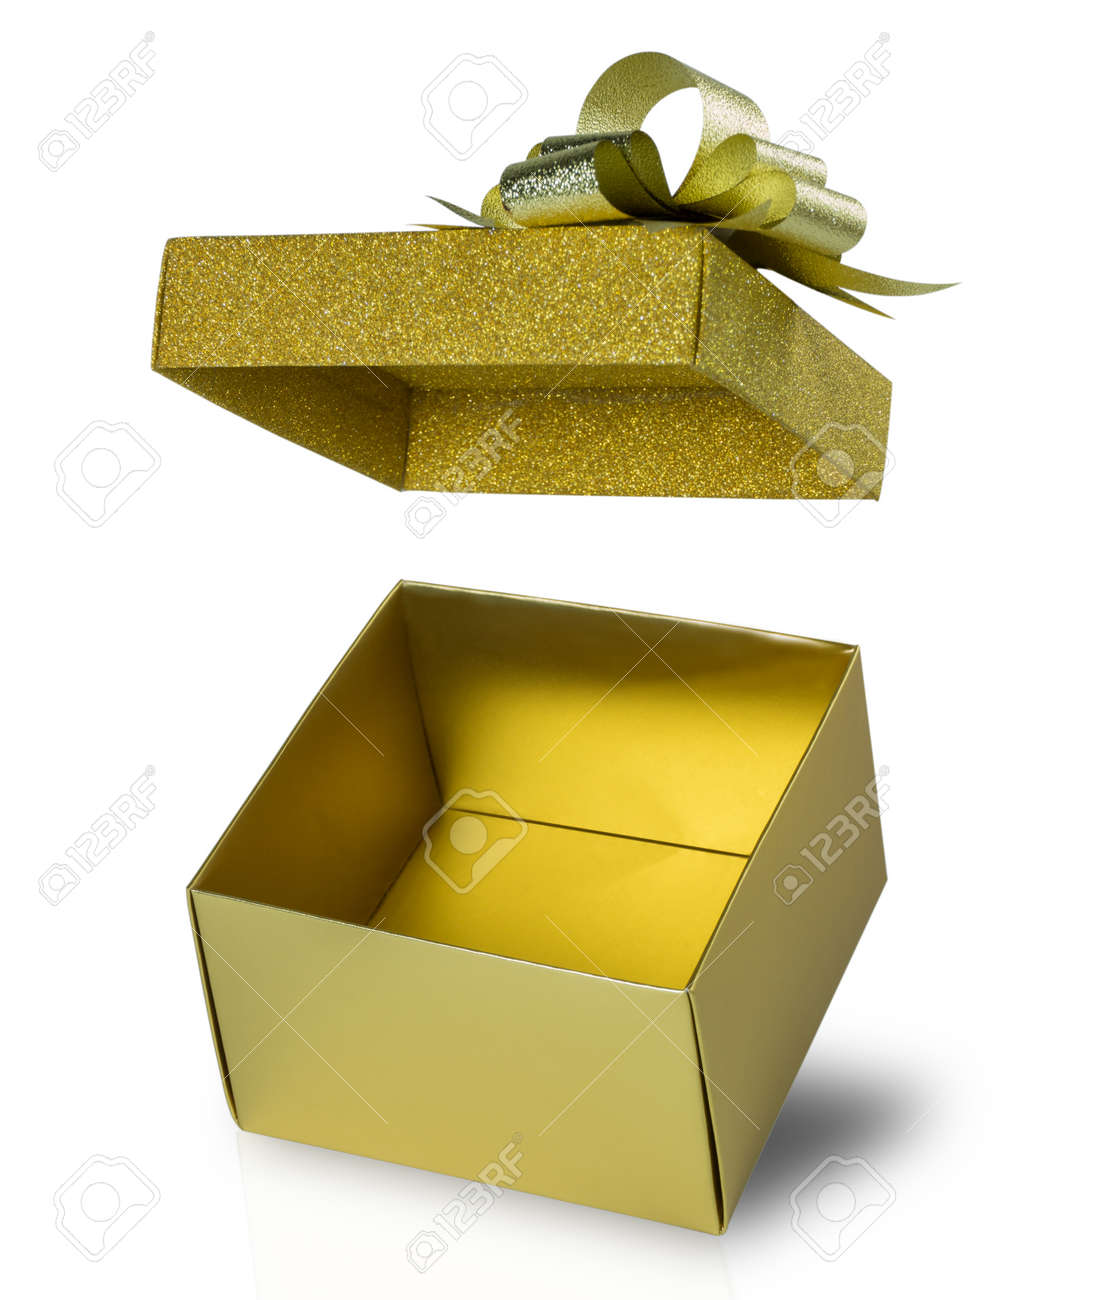 Close up open gift box and floating glitter lid isolated on white background with clipping path  sc 1 st  123RF.com & Close Up Open Gift Box And Floating Glitter Lid Isolated On White ...